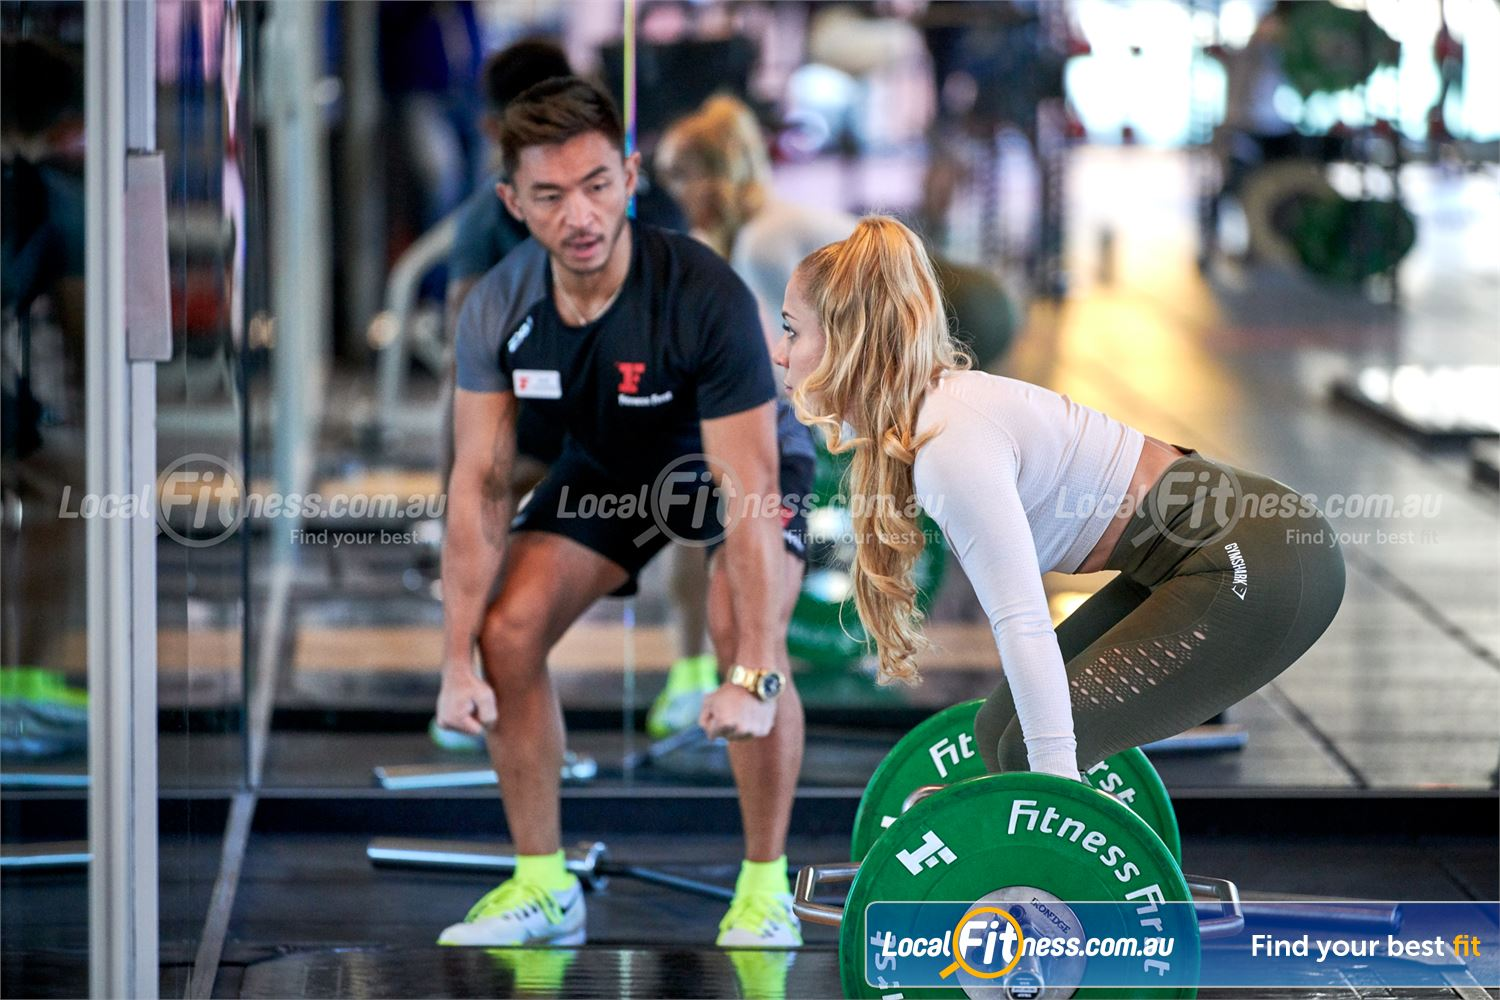 Fitness First Canberra City Near Parkes Canberra personal trainers can help you improve your deadlift.